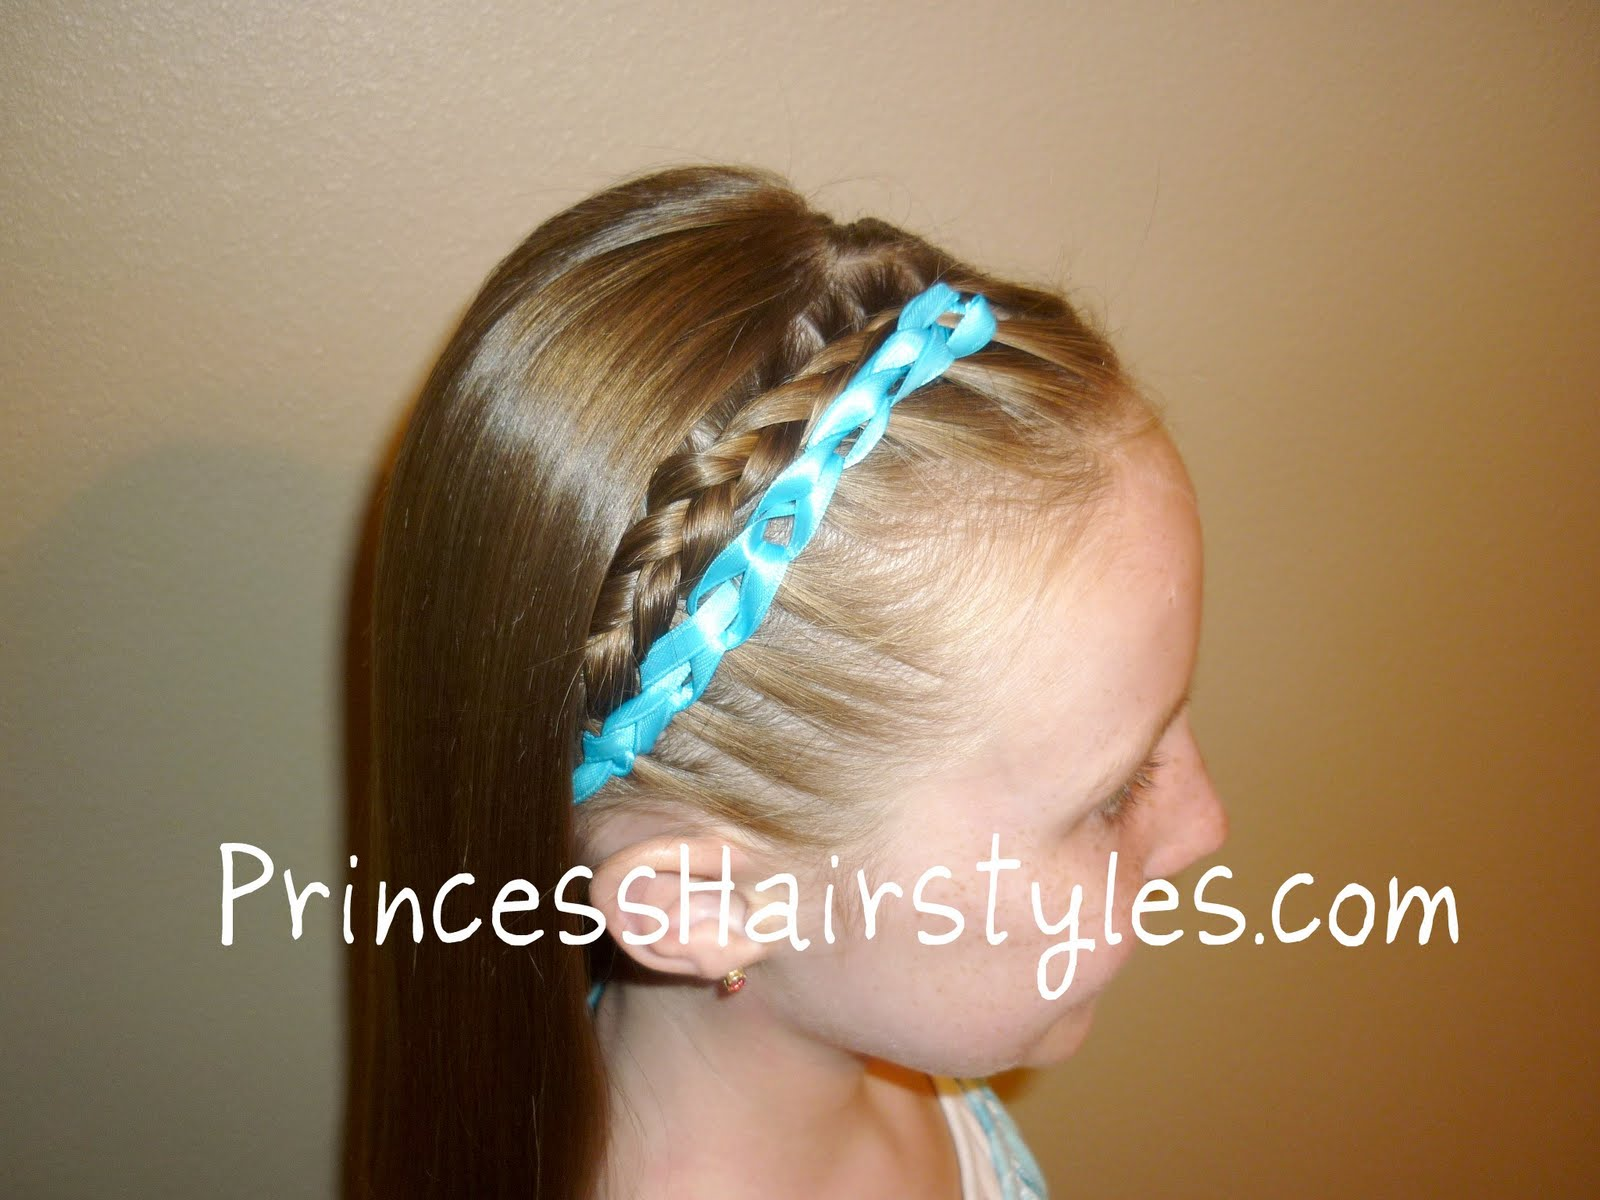 Crocheted Ribbon Braid Hairstyle. 1600 x 1200.Hairstyles Girls Soccer